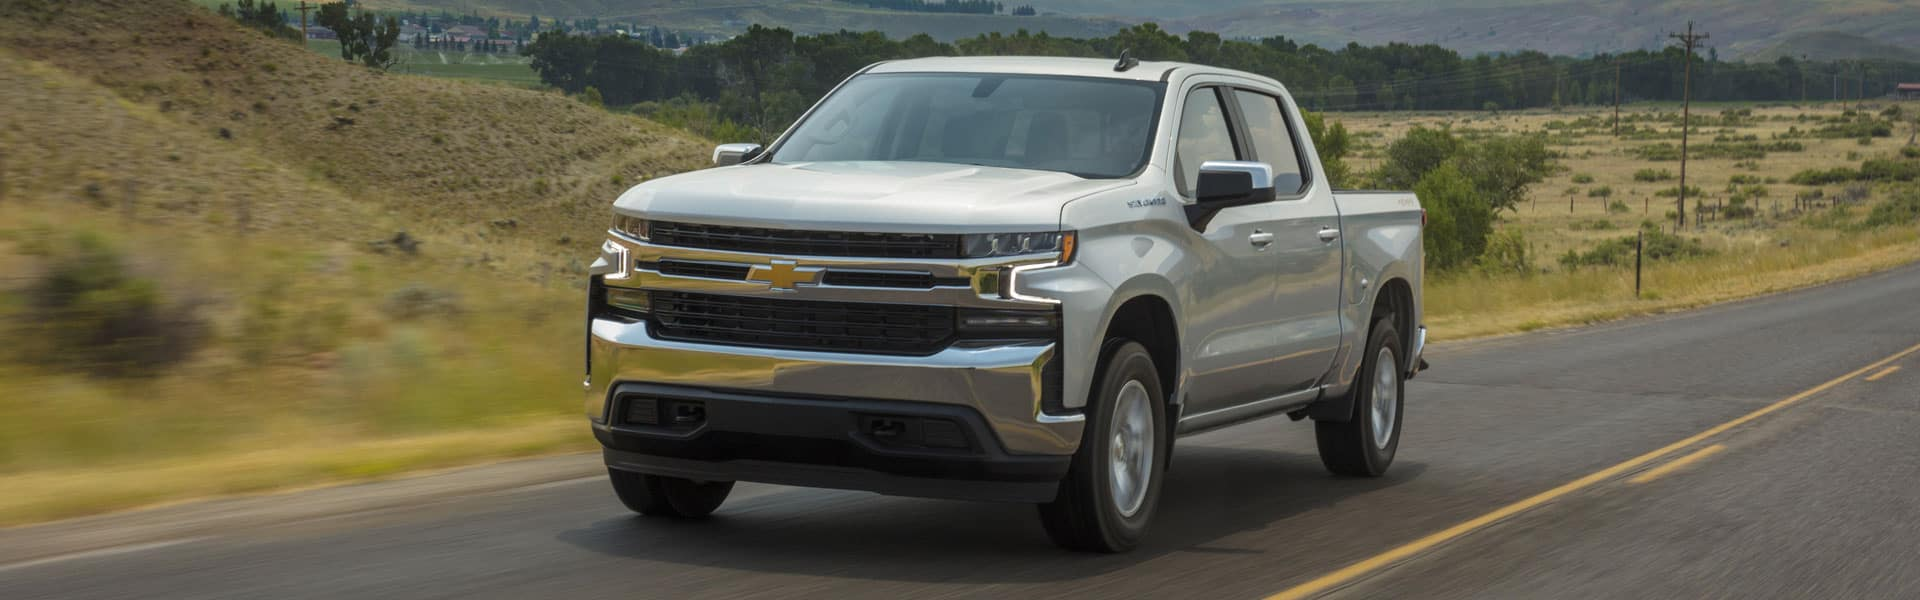 2020 Chevy Silverado Review